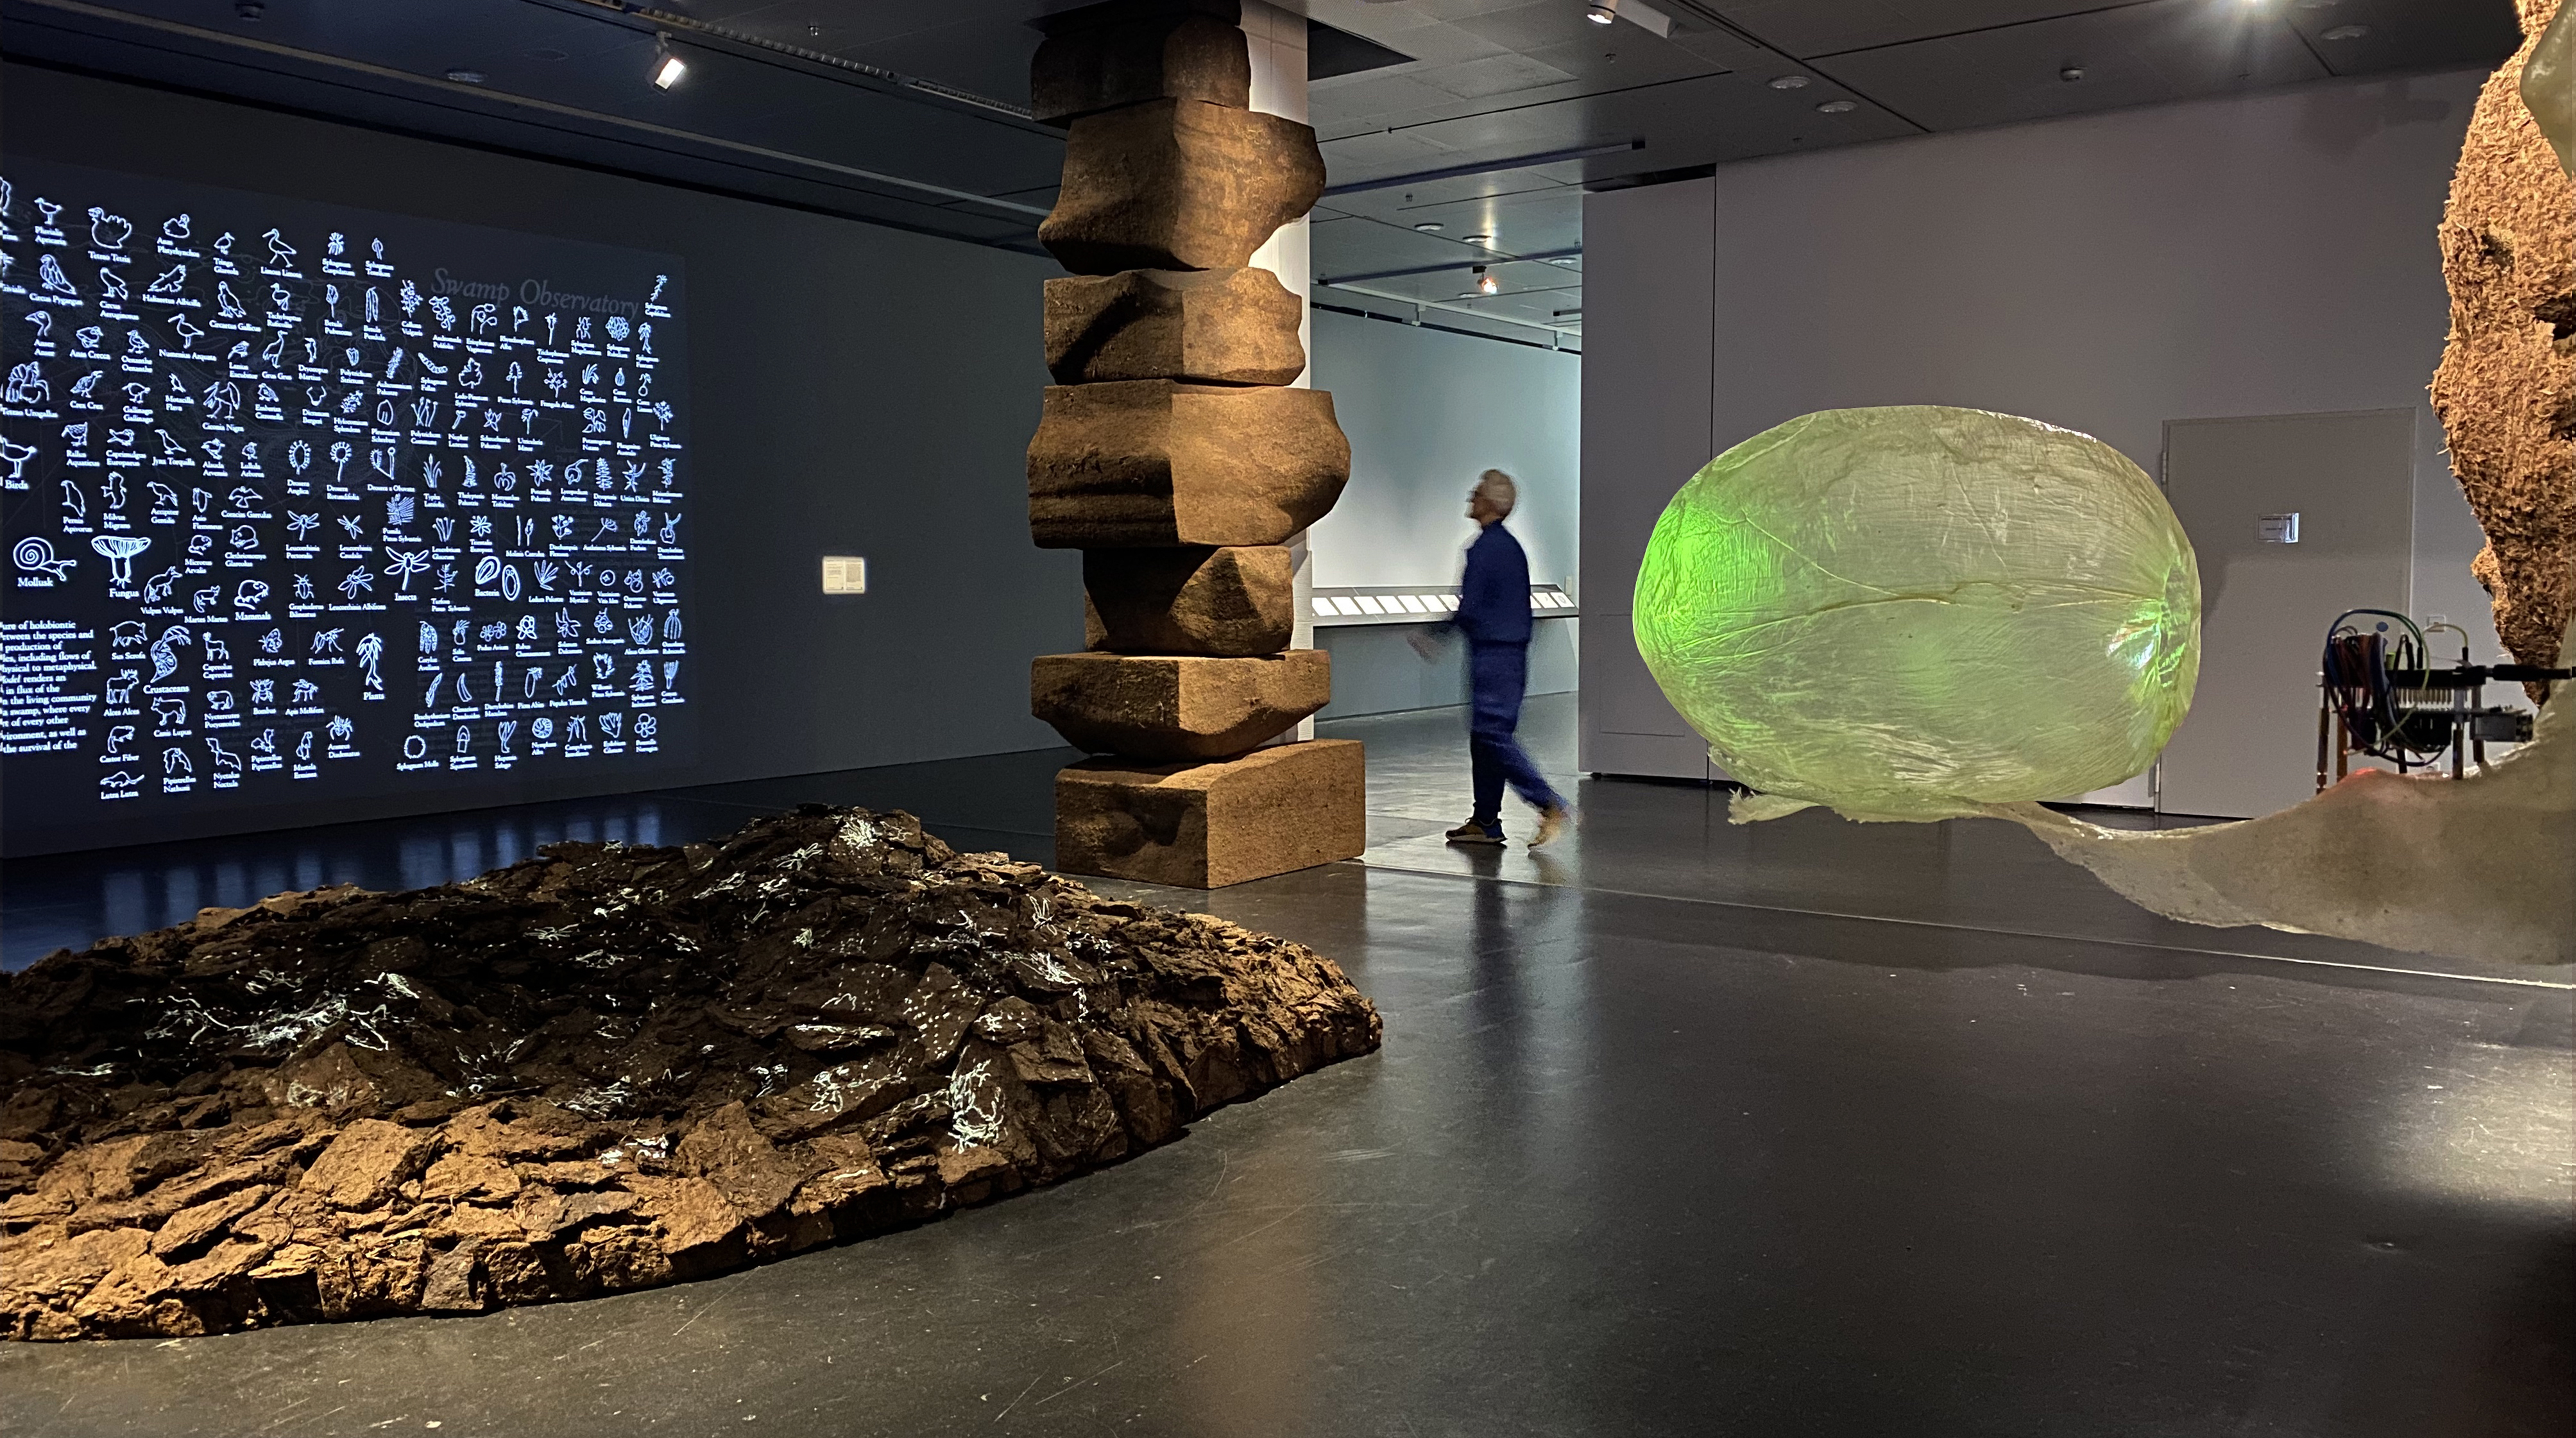 Nomeda & Gediminas Urbonas with MIT Climate Visions. Swamp Observatory, 2020. Mixed media installation. Produced for Critical Zones. Observatories for Earthly Politics exhibition, Center for Art and Media ZKM, Karlsruhe, 2020. Photo: Urbonas Studio